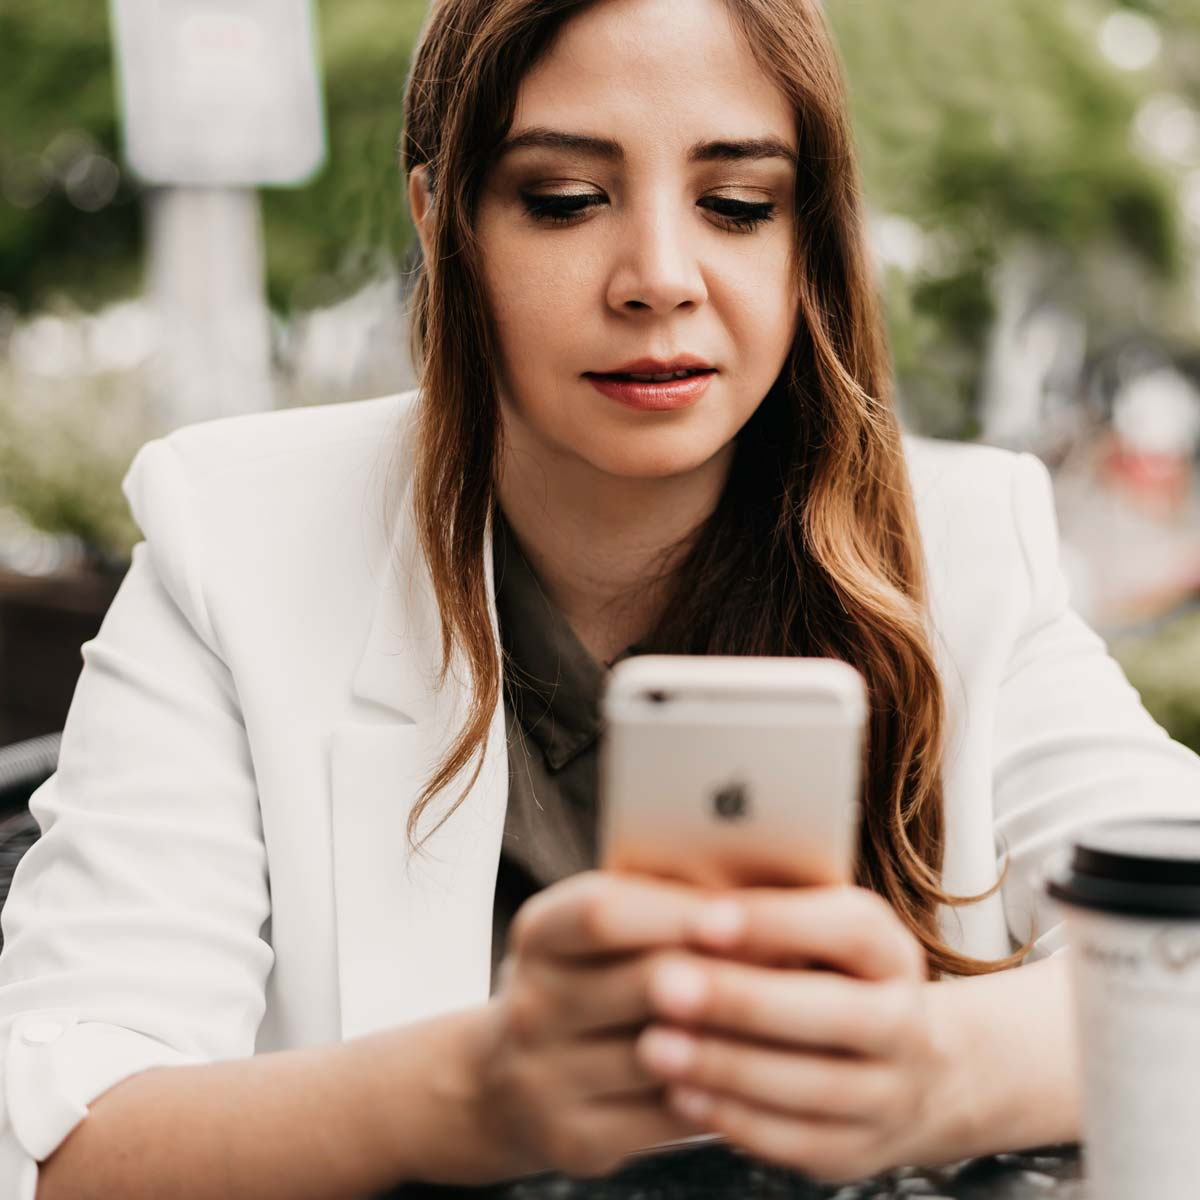 Young business women manages finances on her iphone